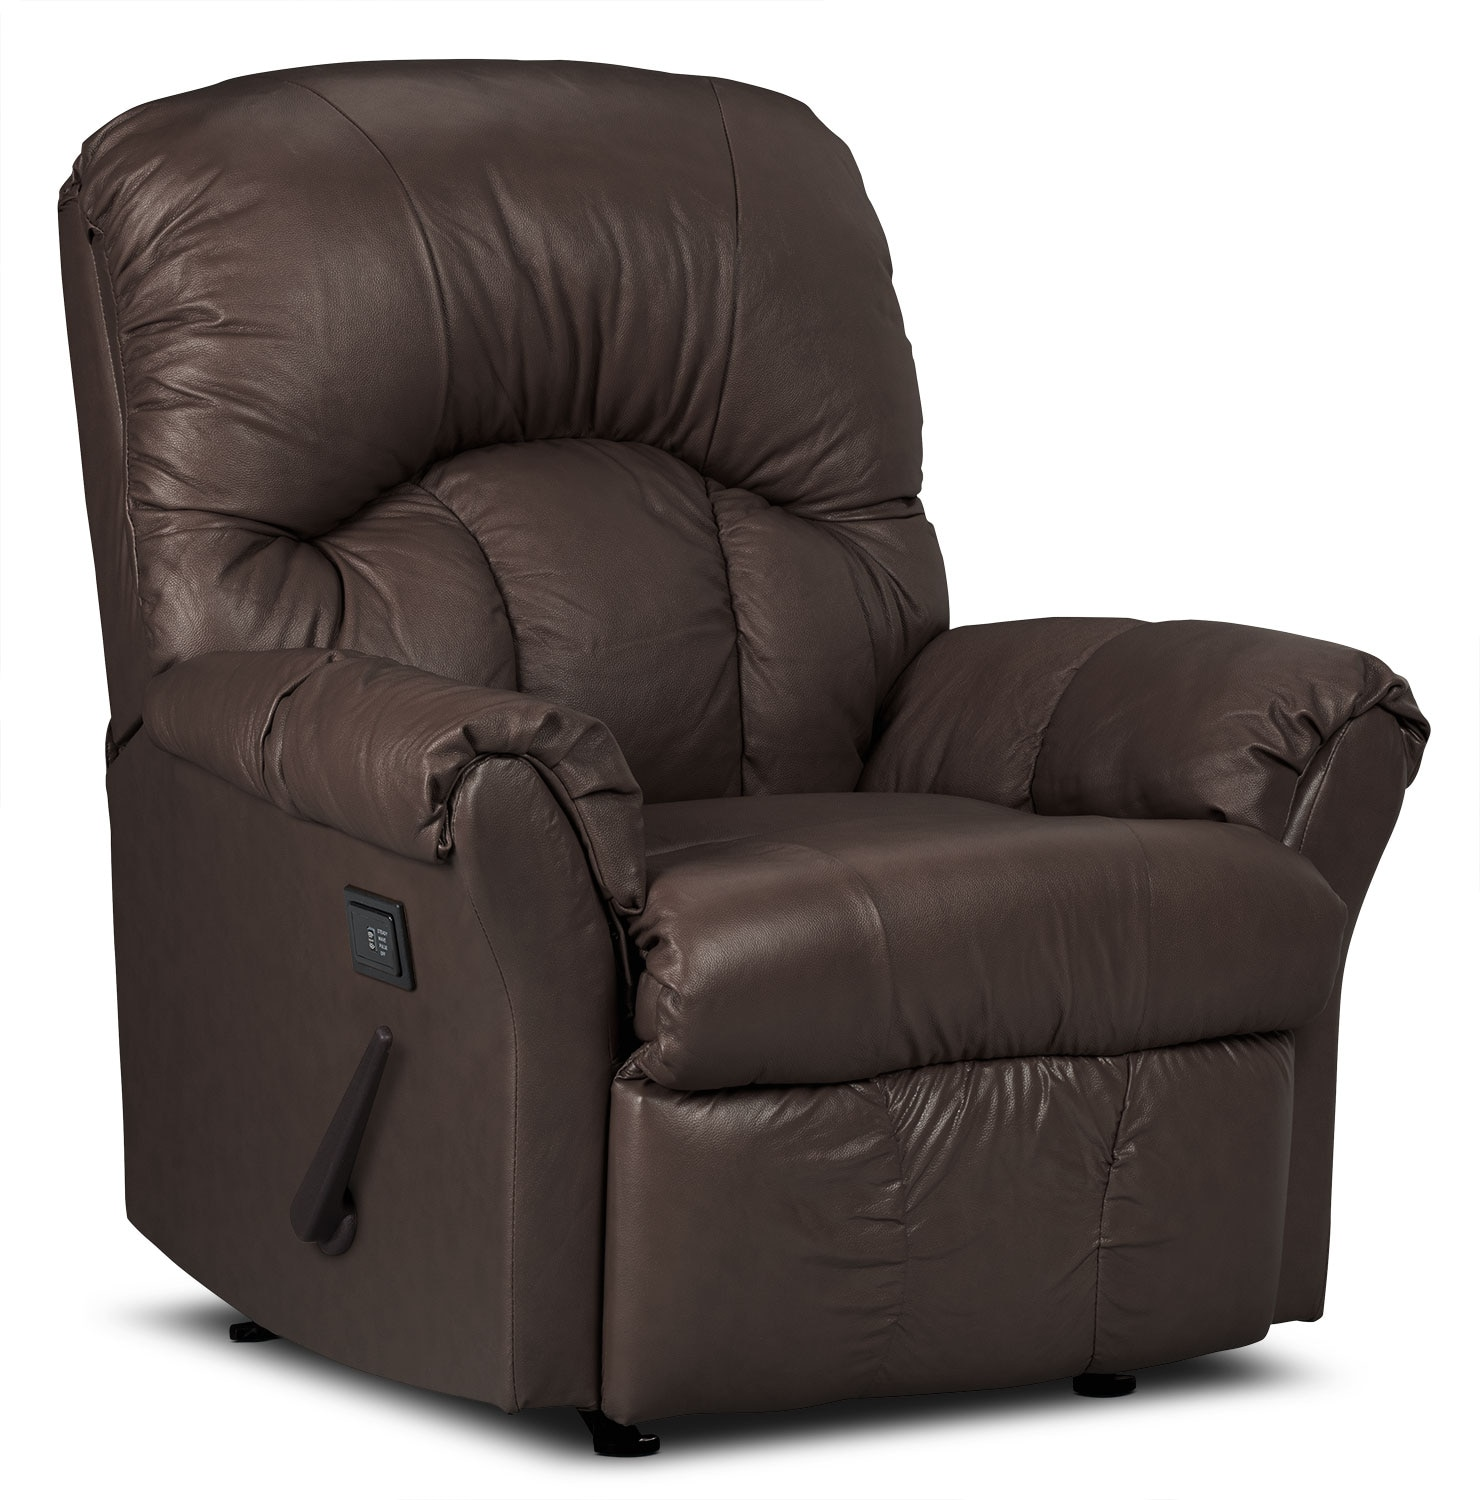 Living Room Furniture - Designed2B Recliner 6734 Bonded Leather Massage Chair - Walnut